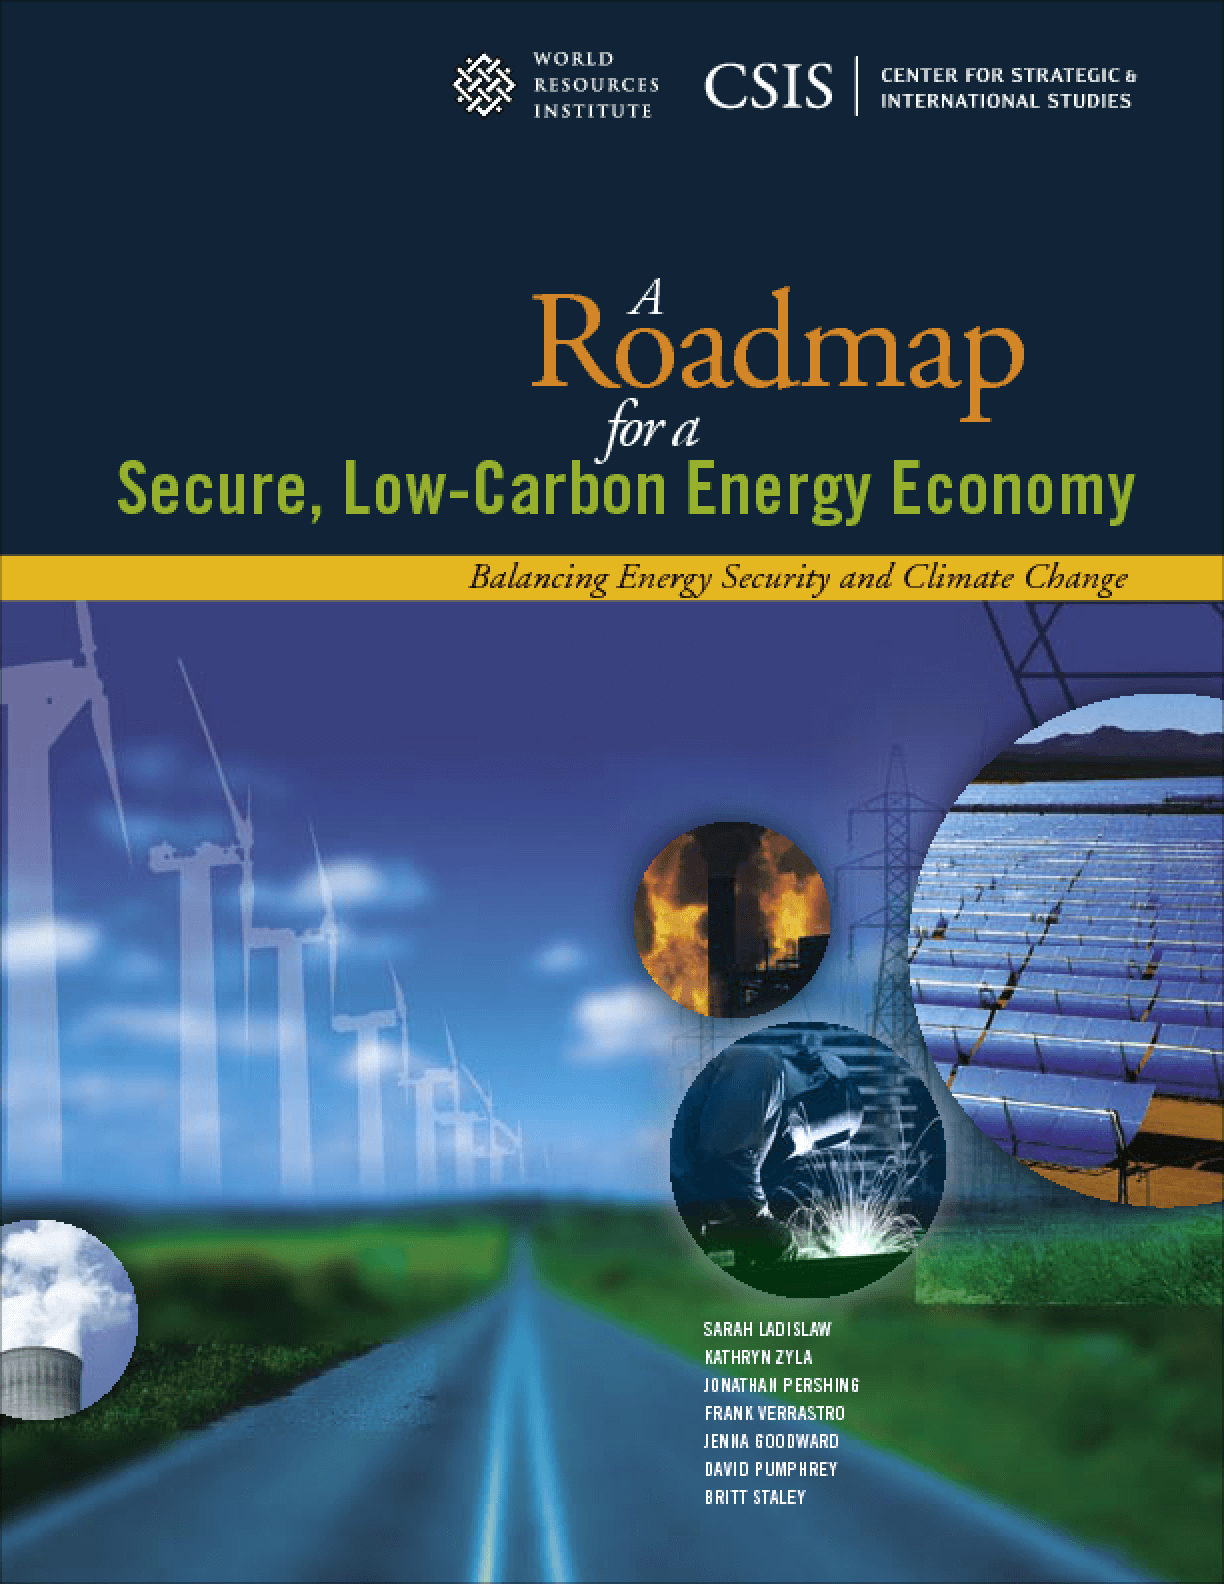 A Roadmap for a Secure, Low-Carbon Energy Economy